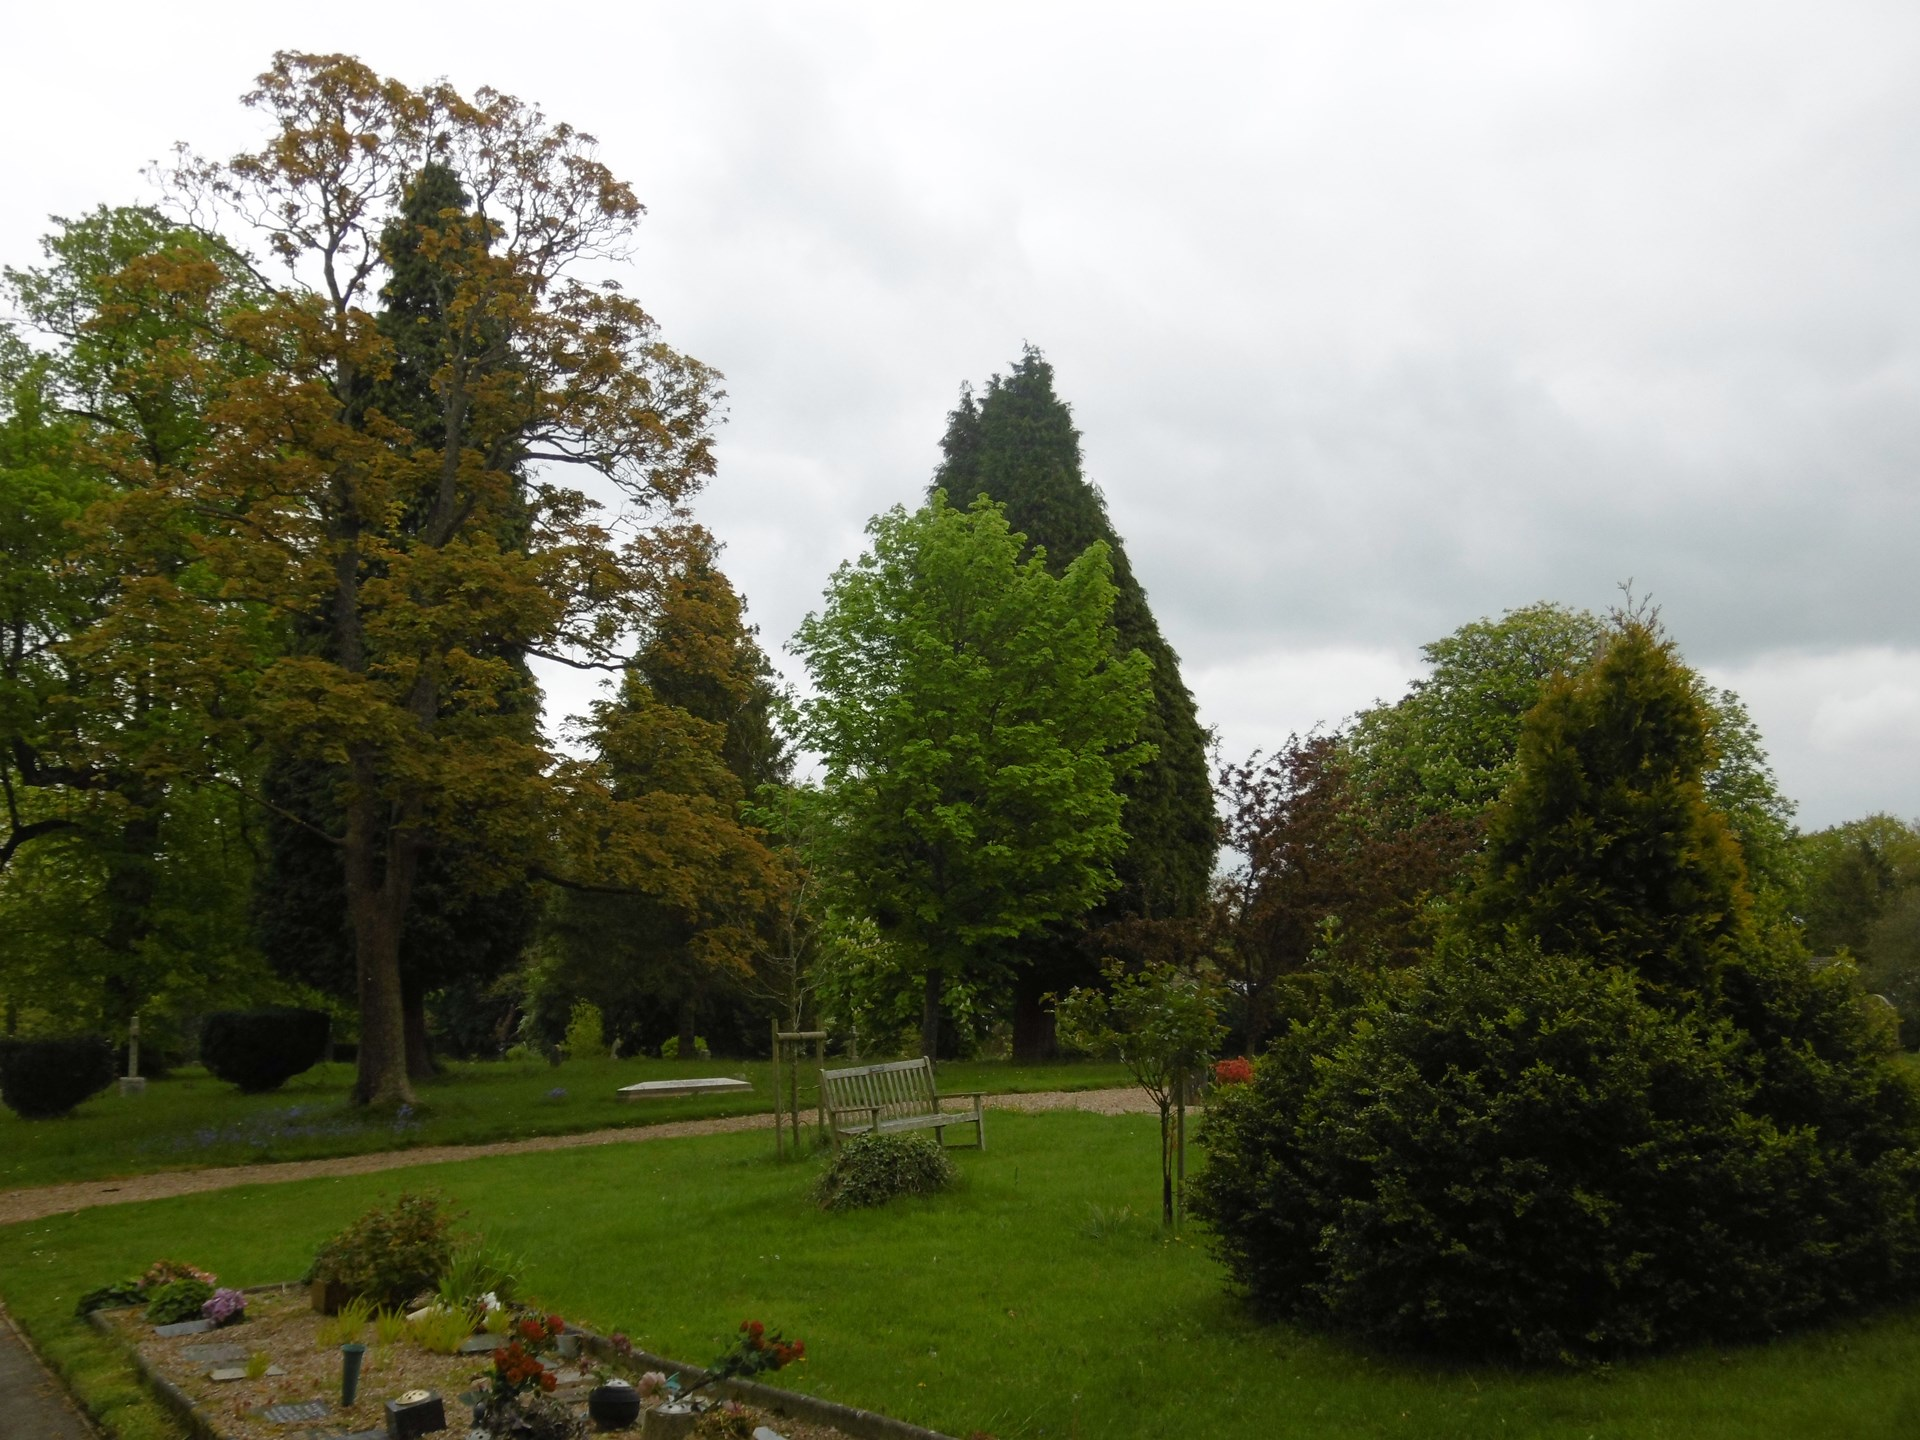 The Old Cemetery with the Garden of Remembrance in the foreground